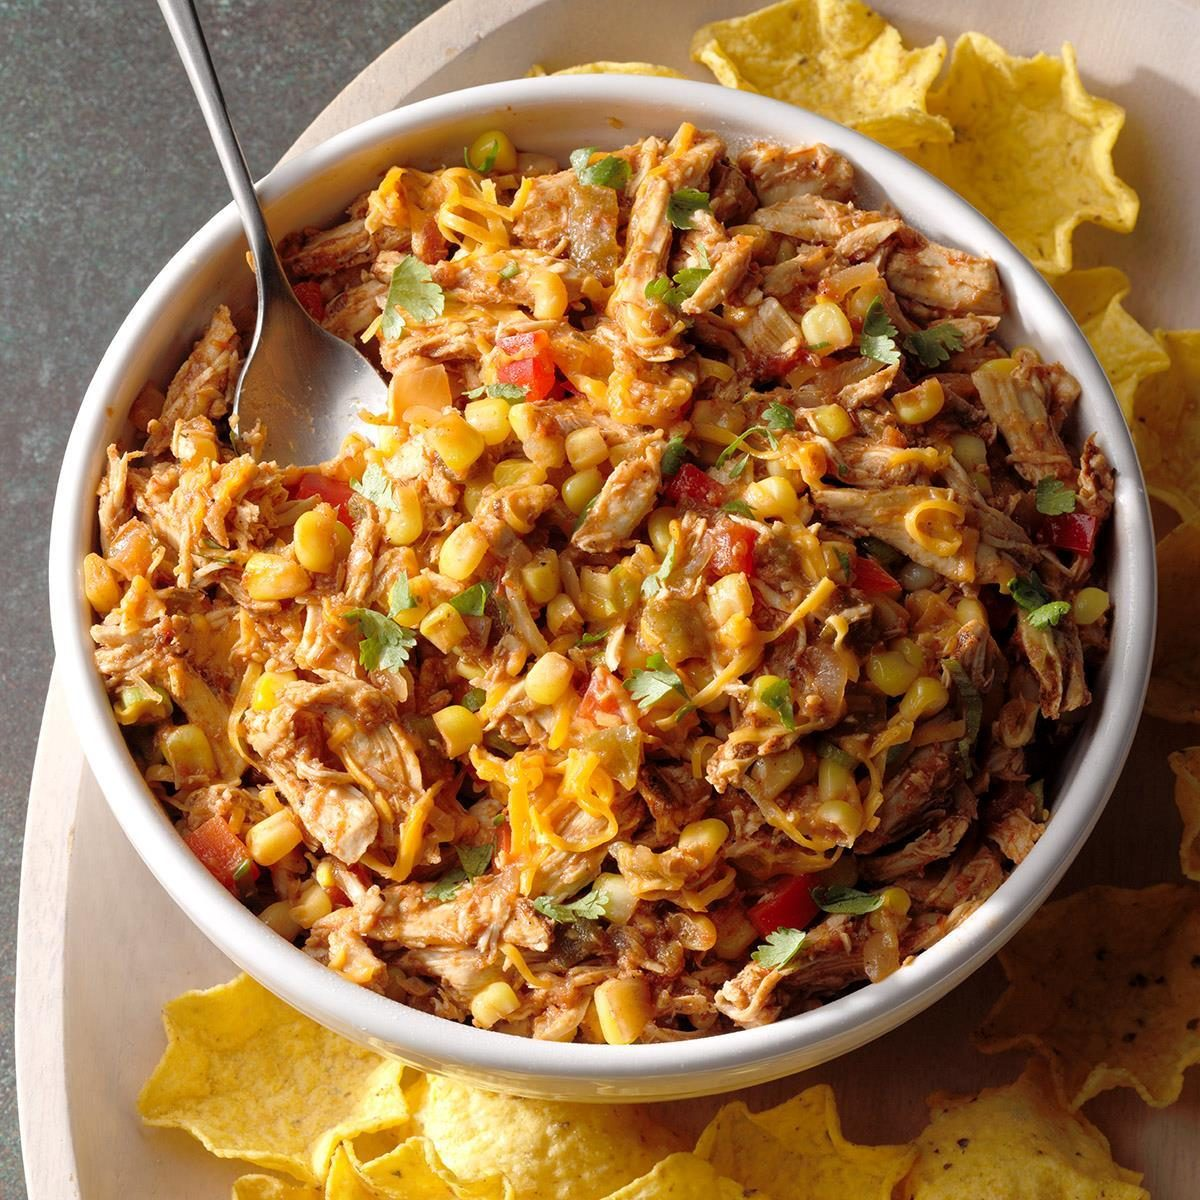 50 Diabetic-Friendly Recipes to Bring to a Potluck